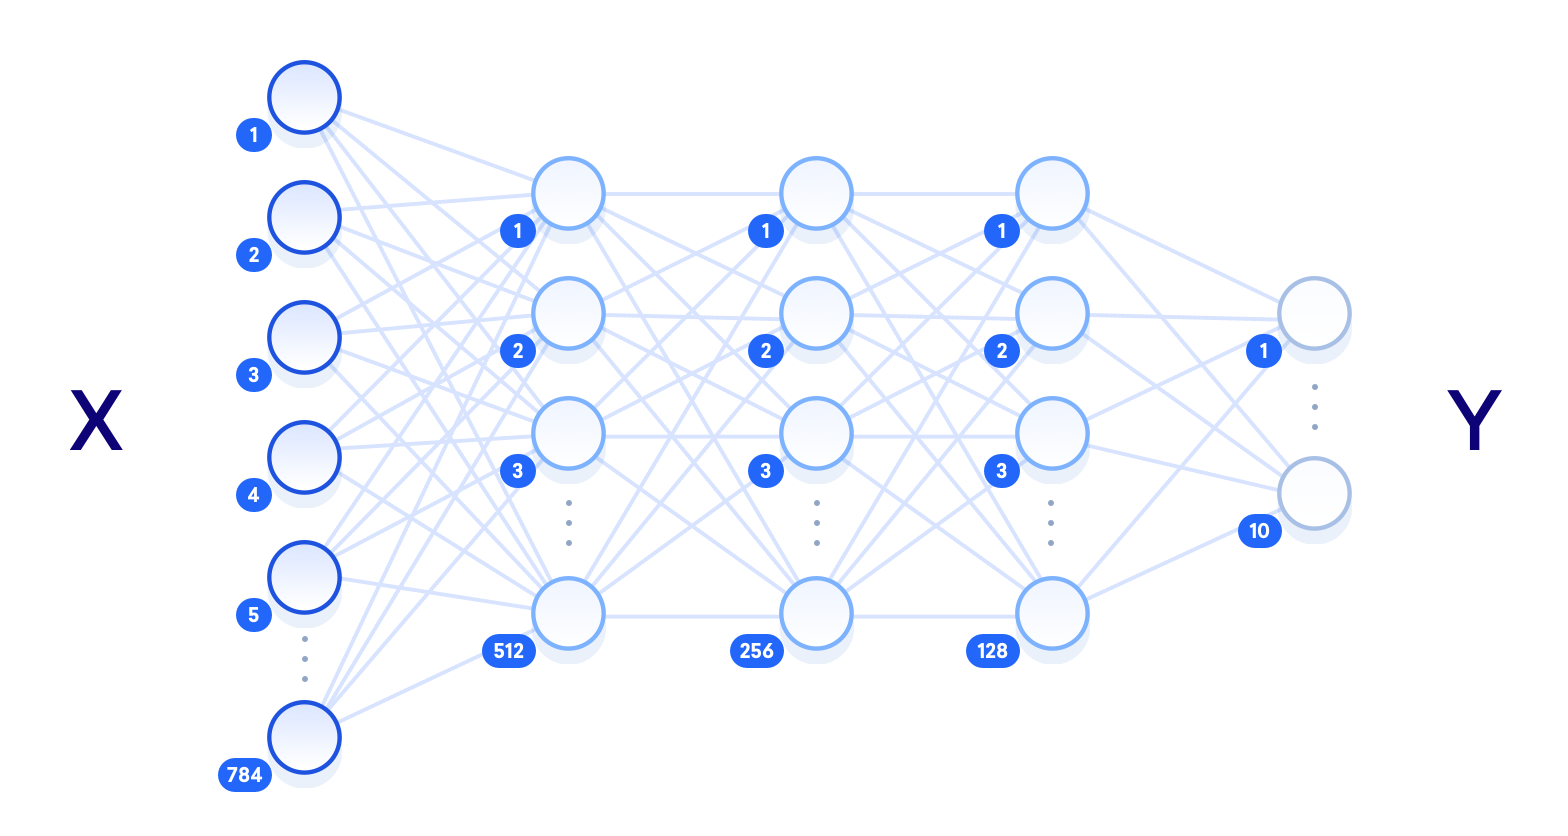 Diagram of a neural network